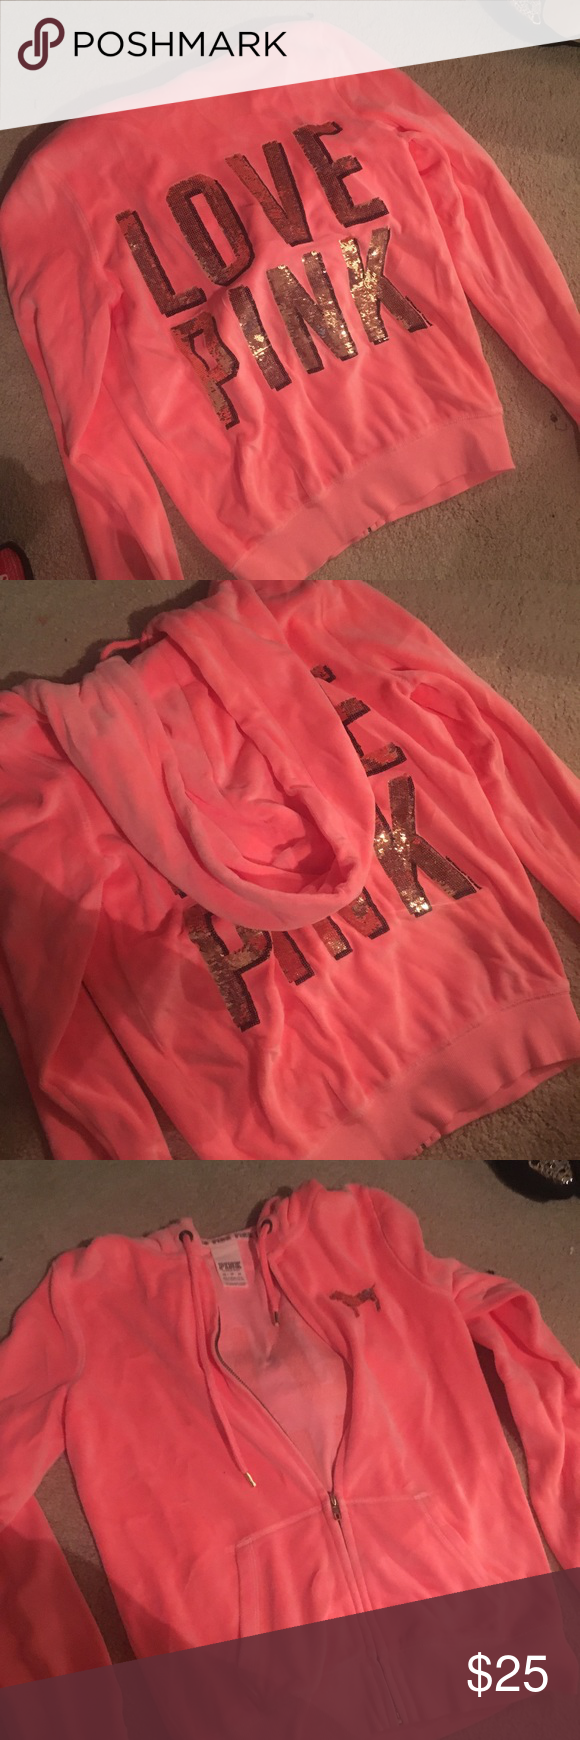 PINK by VS Zip Hoodie This zip up hoodie by Victoria's Secret pink is so pretty! It's in the perfect coral color with gold sequins on the back and a little on the front. It's been worn a few times and washed, but it's still in great condition and there areno signs of wear or any stains! It is a size extra small but these run a little bigger so a size small could fit in it as well. PINK Victoria's Secret Jackets & Coats